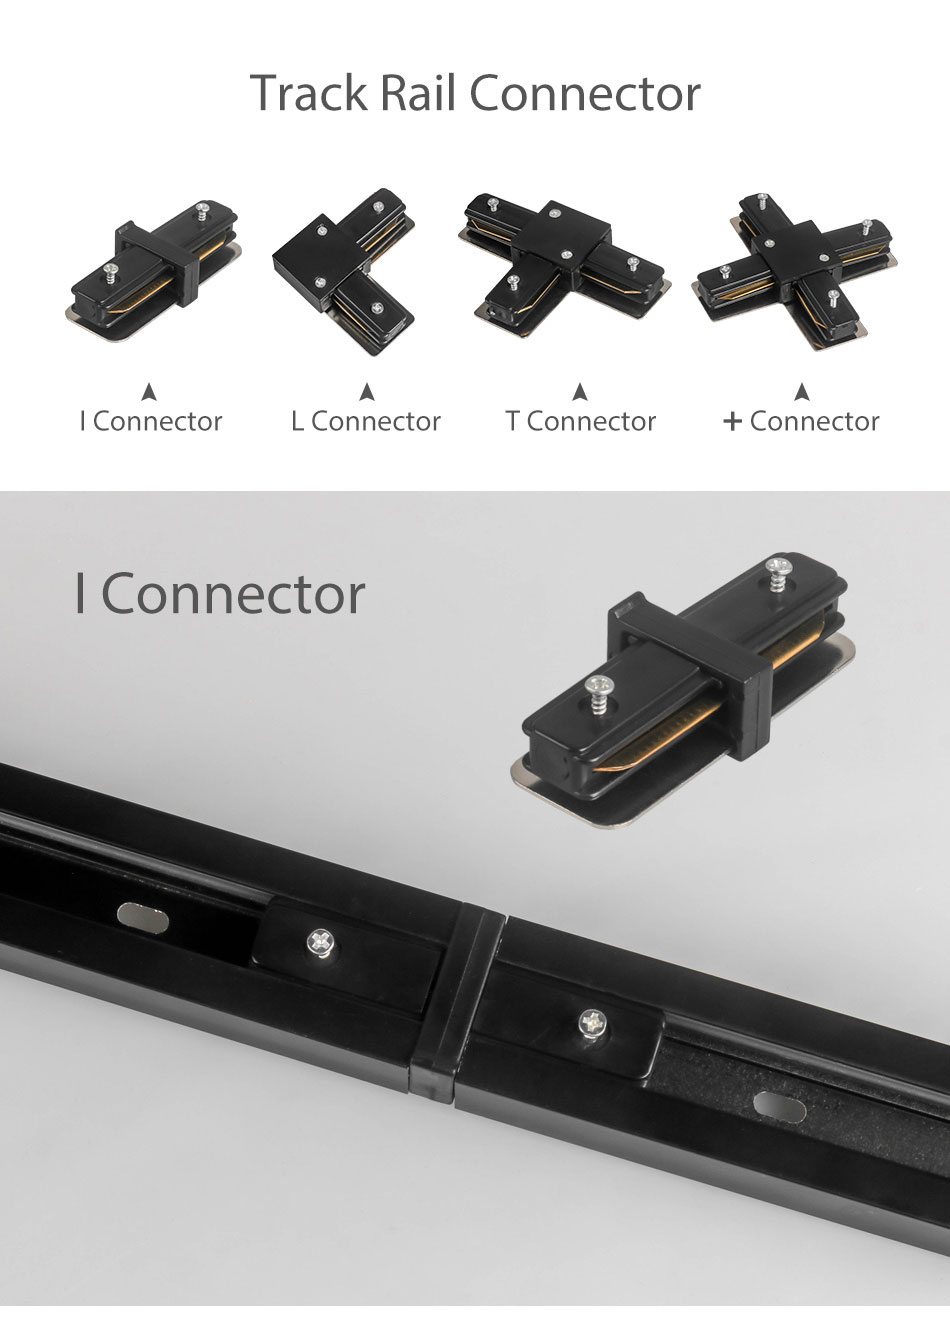 Track Rail 1m Track Light Fitting Aluminum 1 meter 2 wire Connector System Tracks Fixture black white Universal Rails 10pcslot (5)